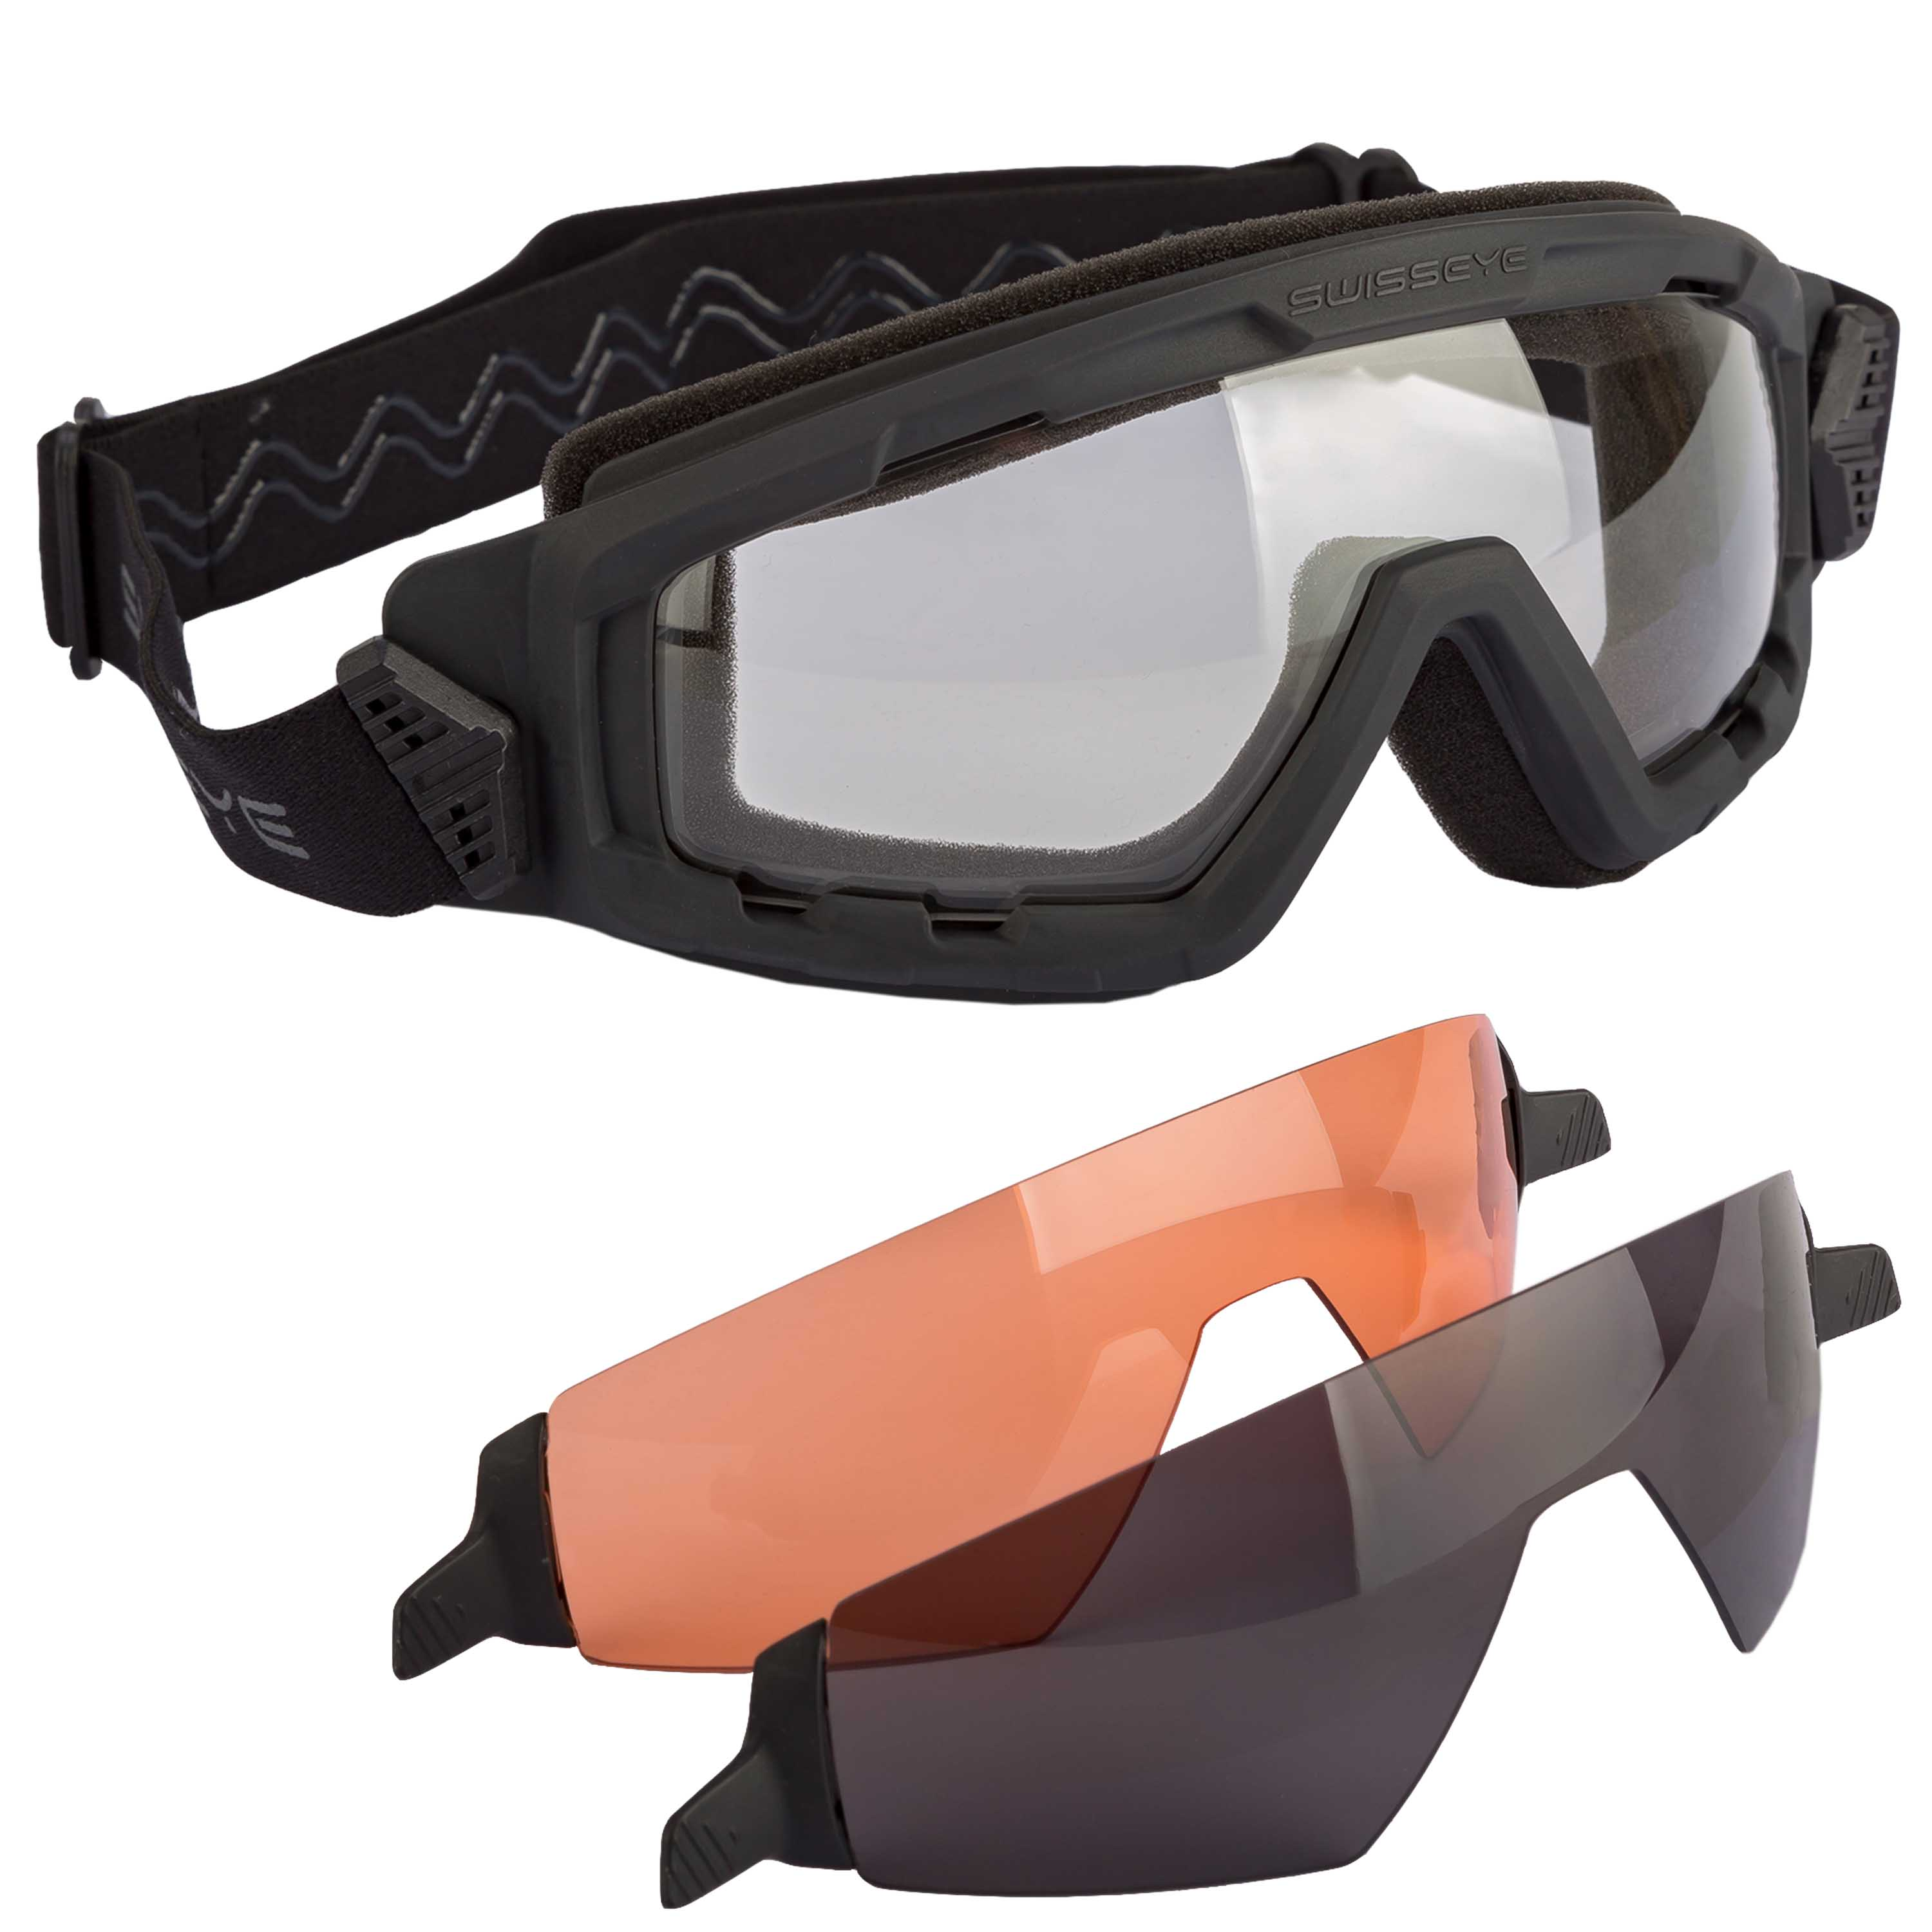 Swiss Eye Brille G-Tac schwarz